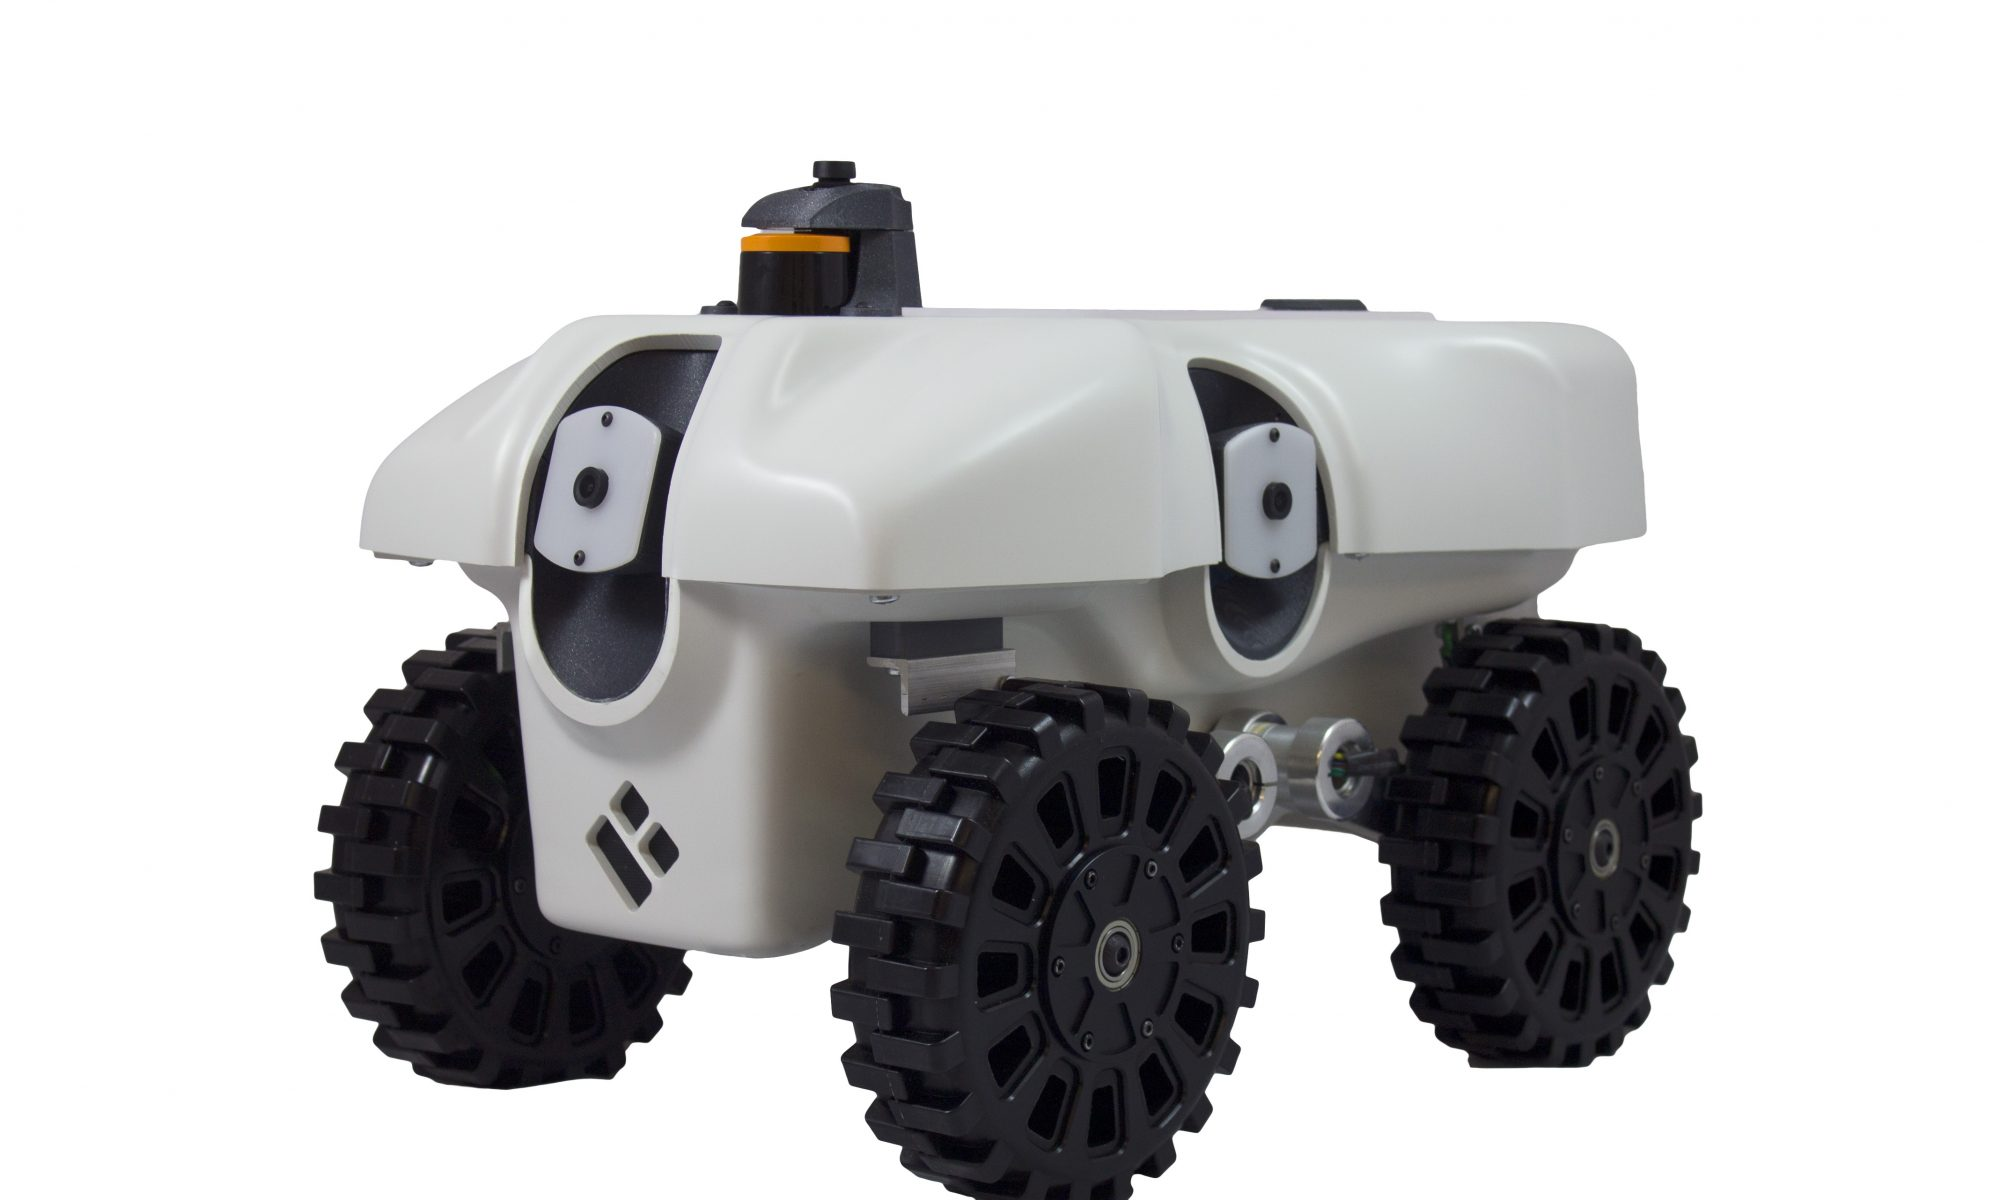 EarthSense Begins Creating Autonomous Disinfecting Robots to Fight Transmission of COVID-19 1 EarthSense Begins Creating Autonomous Disinfecting Robots to Fight Transmission of COVID-19